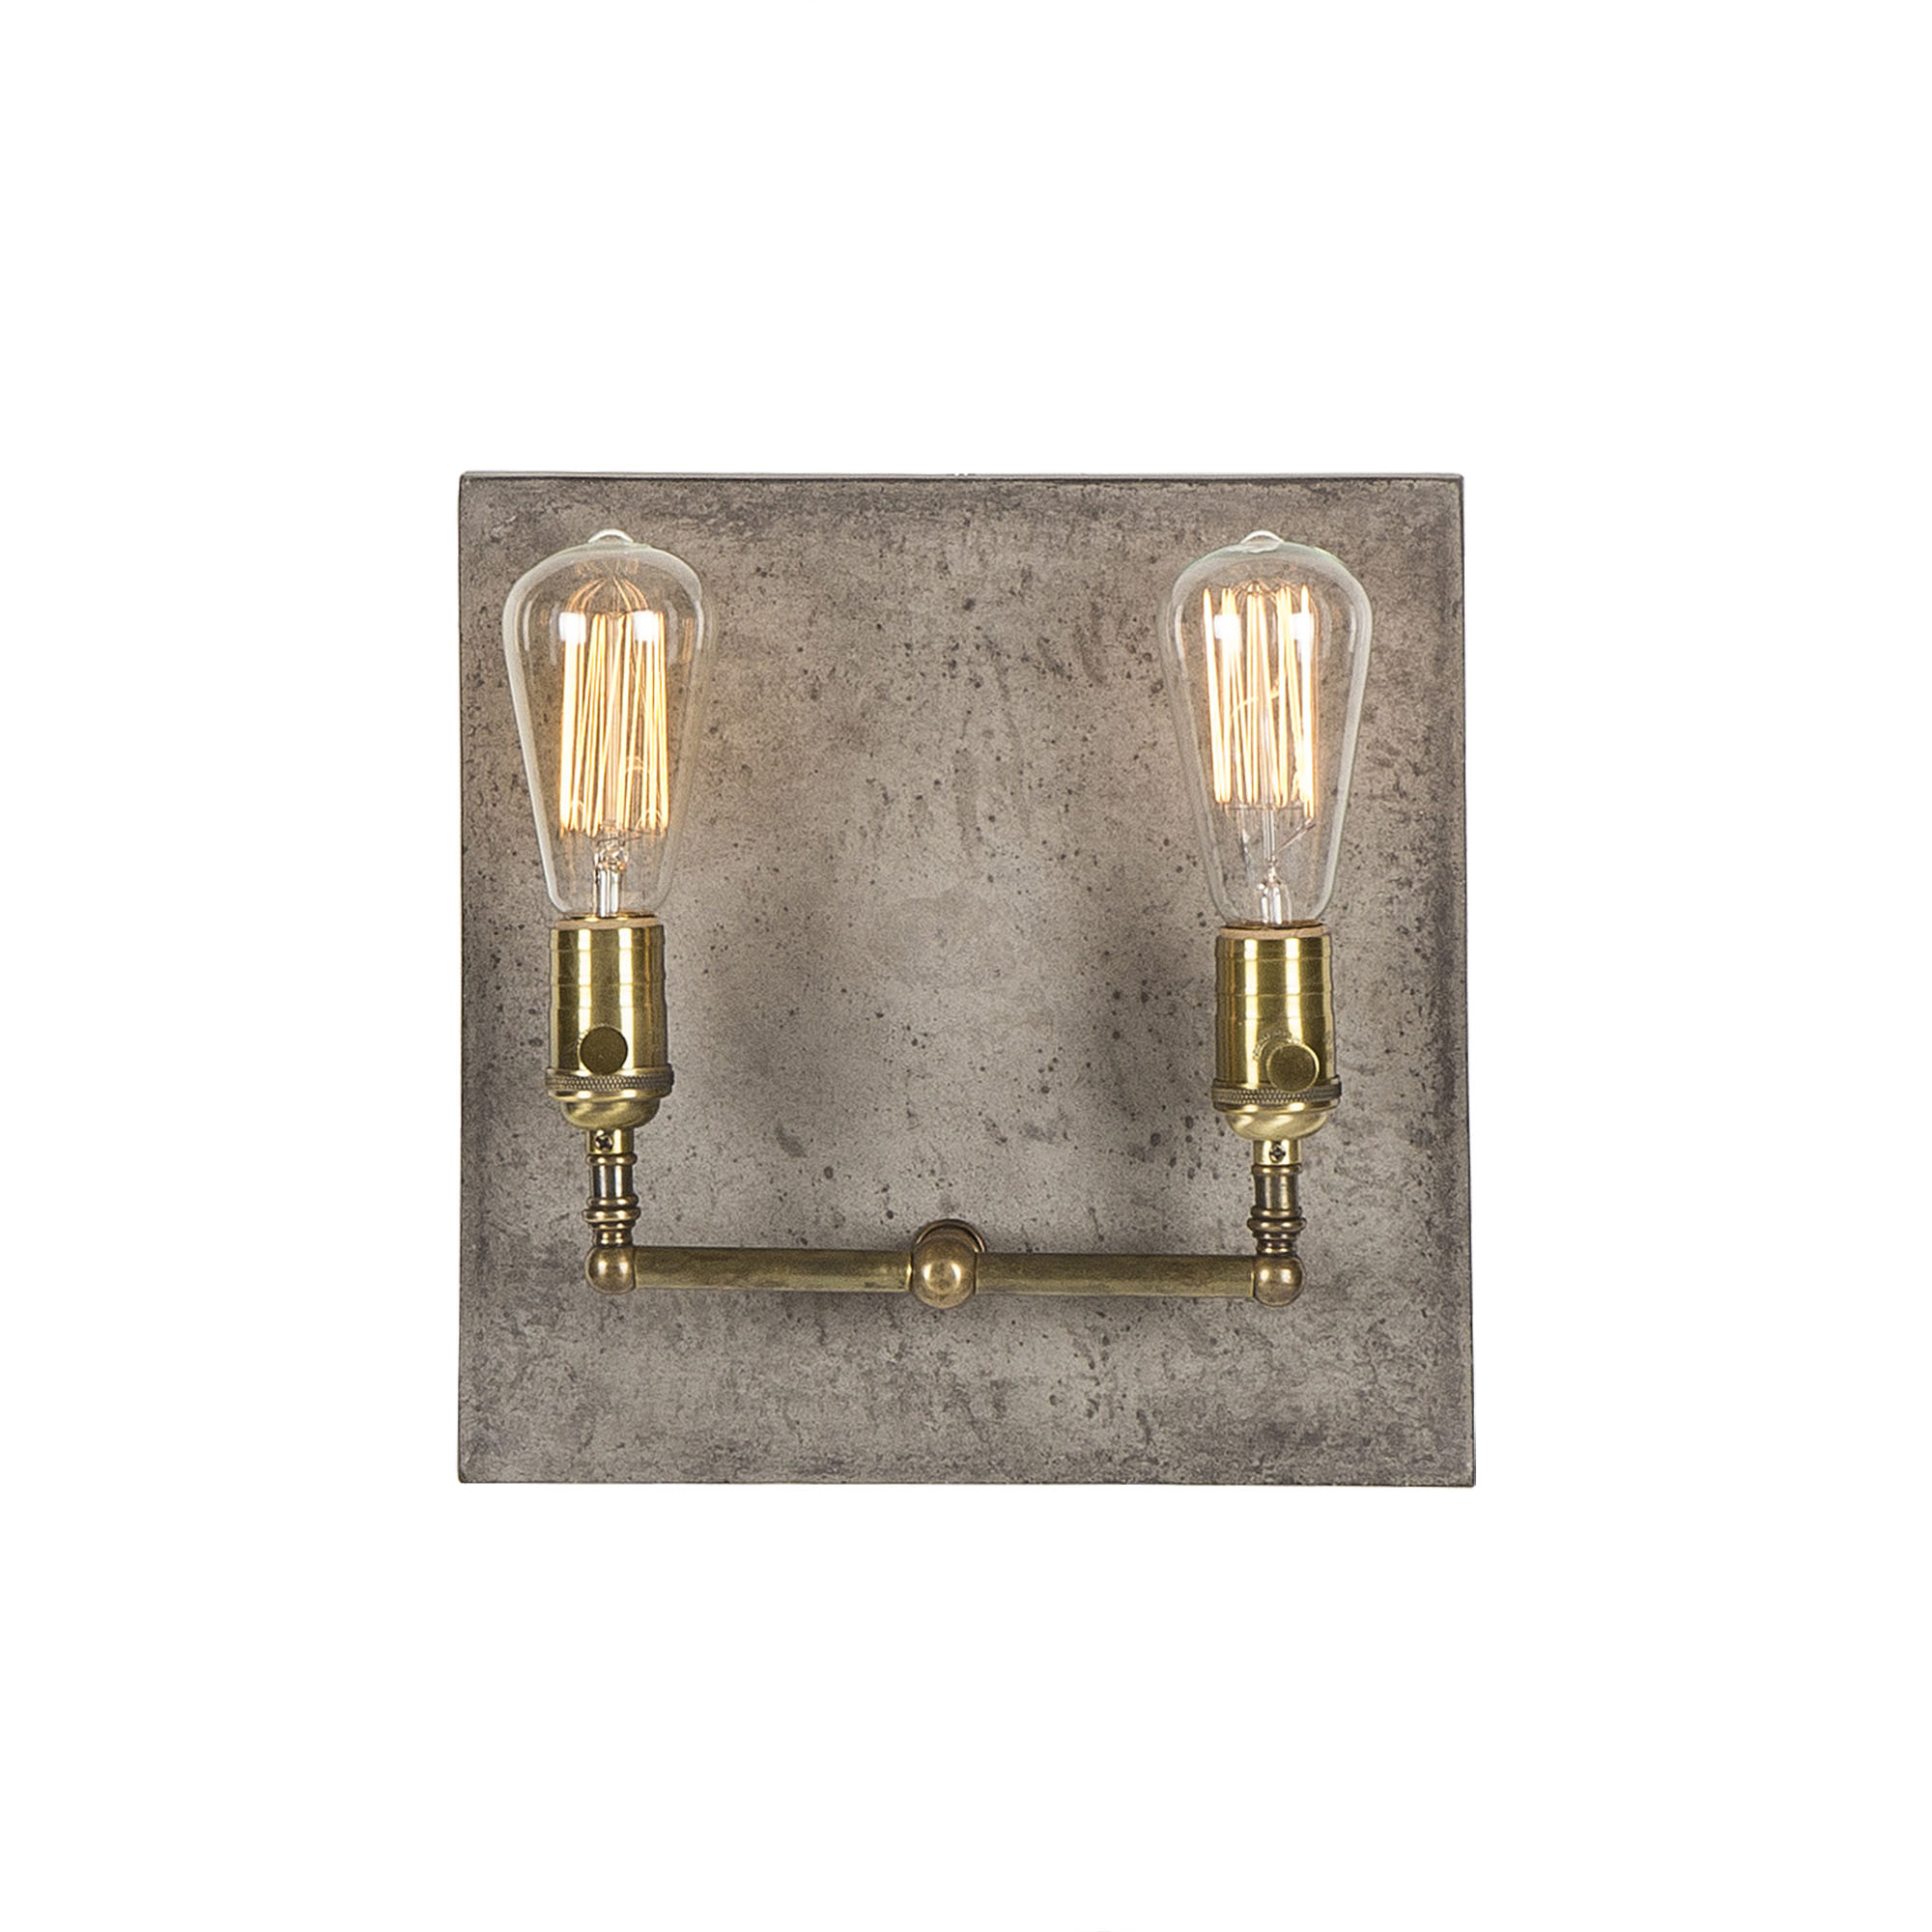 Nellcote_Studio_Factory Sconce in Aged Brass.jpg